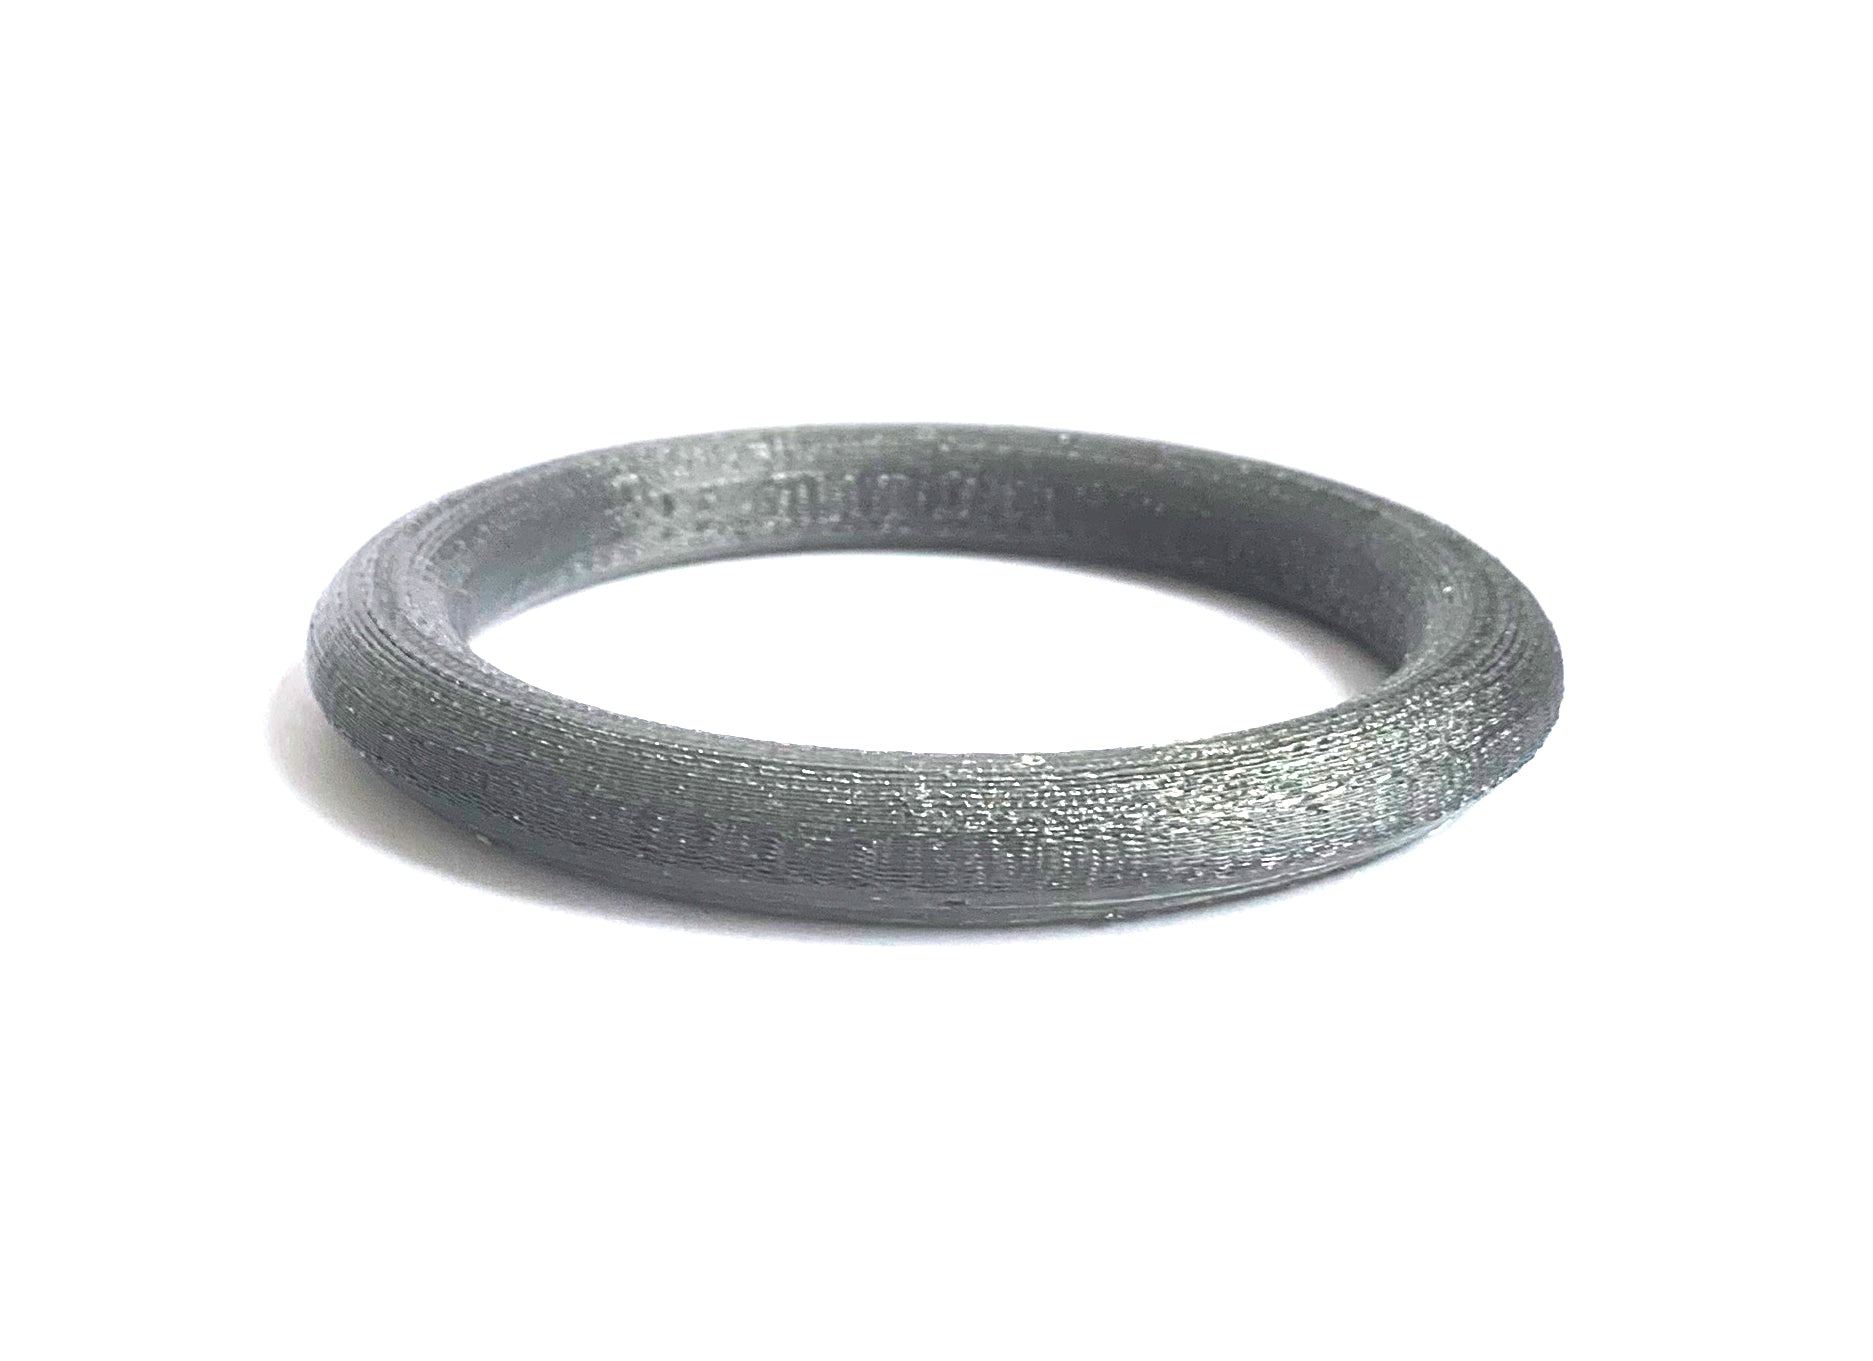 Silver Smoke Bio-Plastic Bangle Bracelet by HEISEL